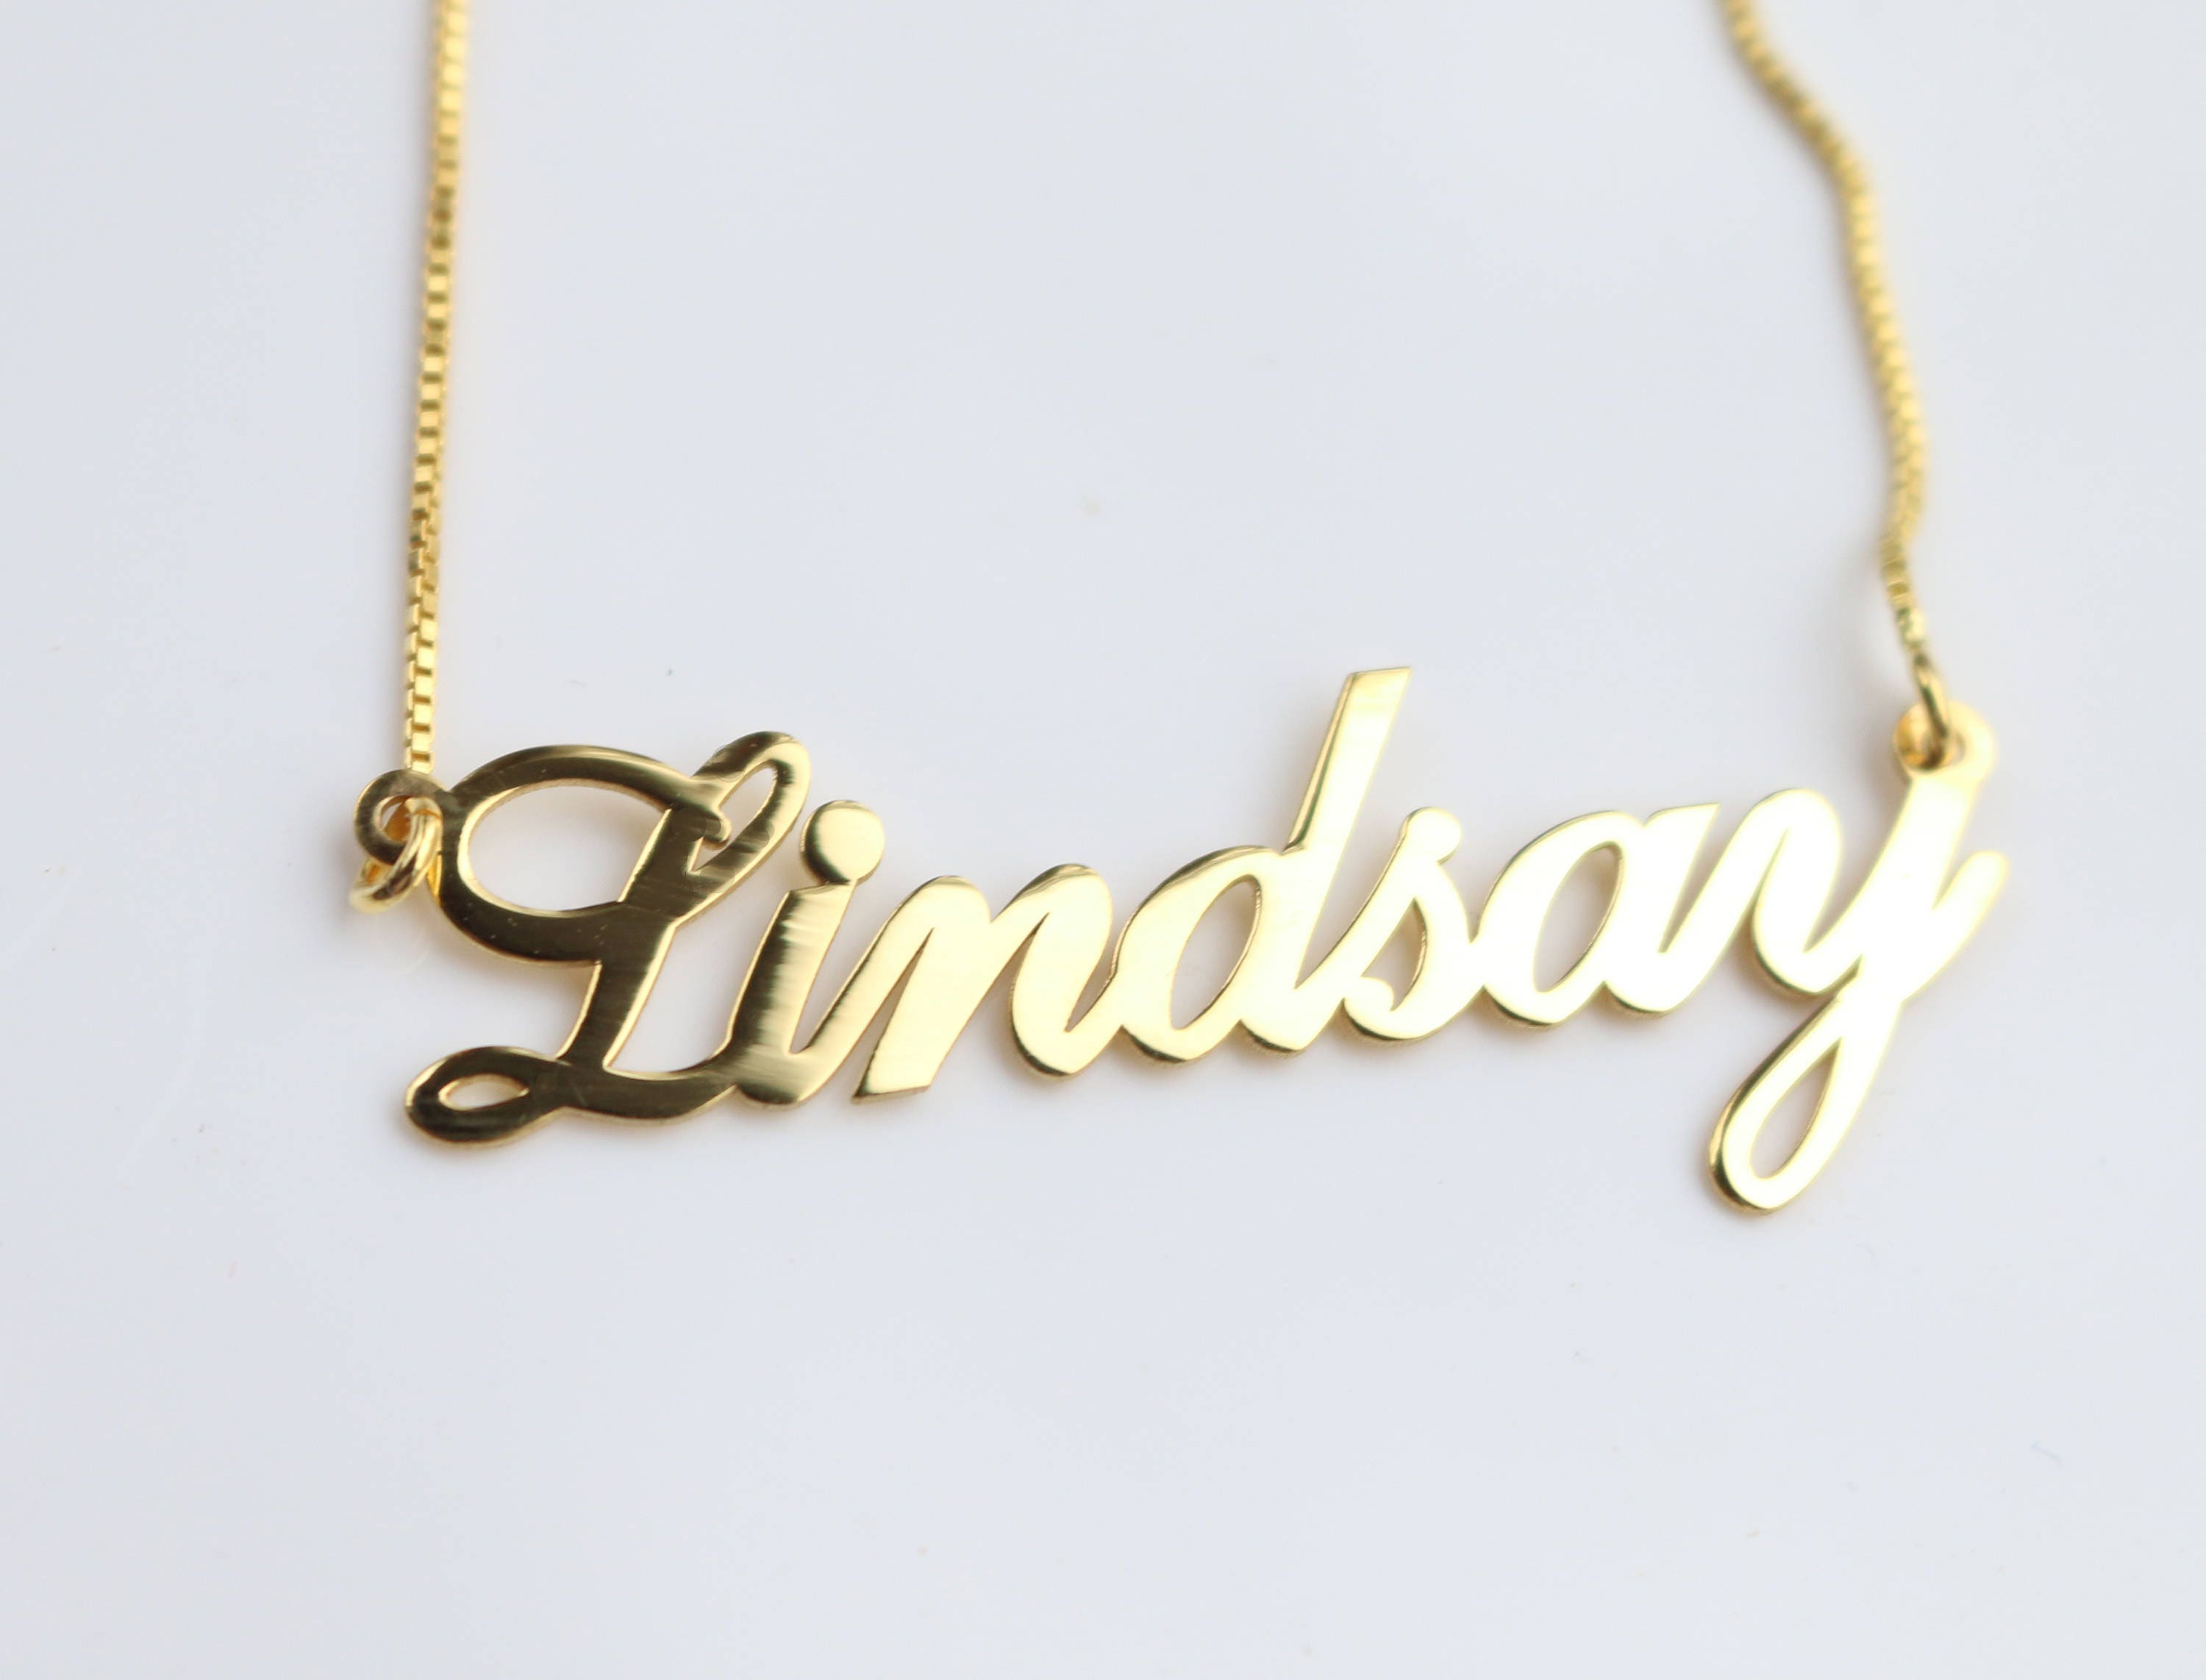 ip girls necklace chains walmart sterling com personalized over gold silver name